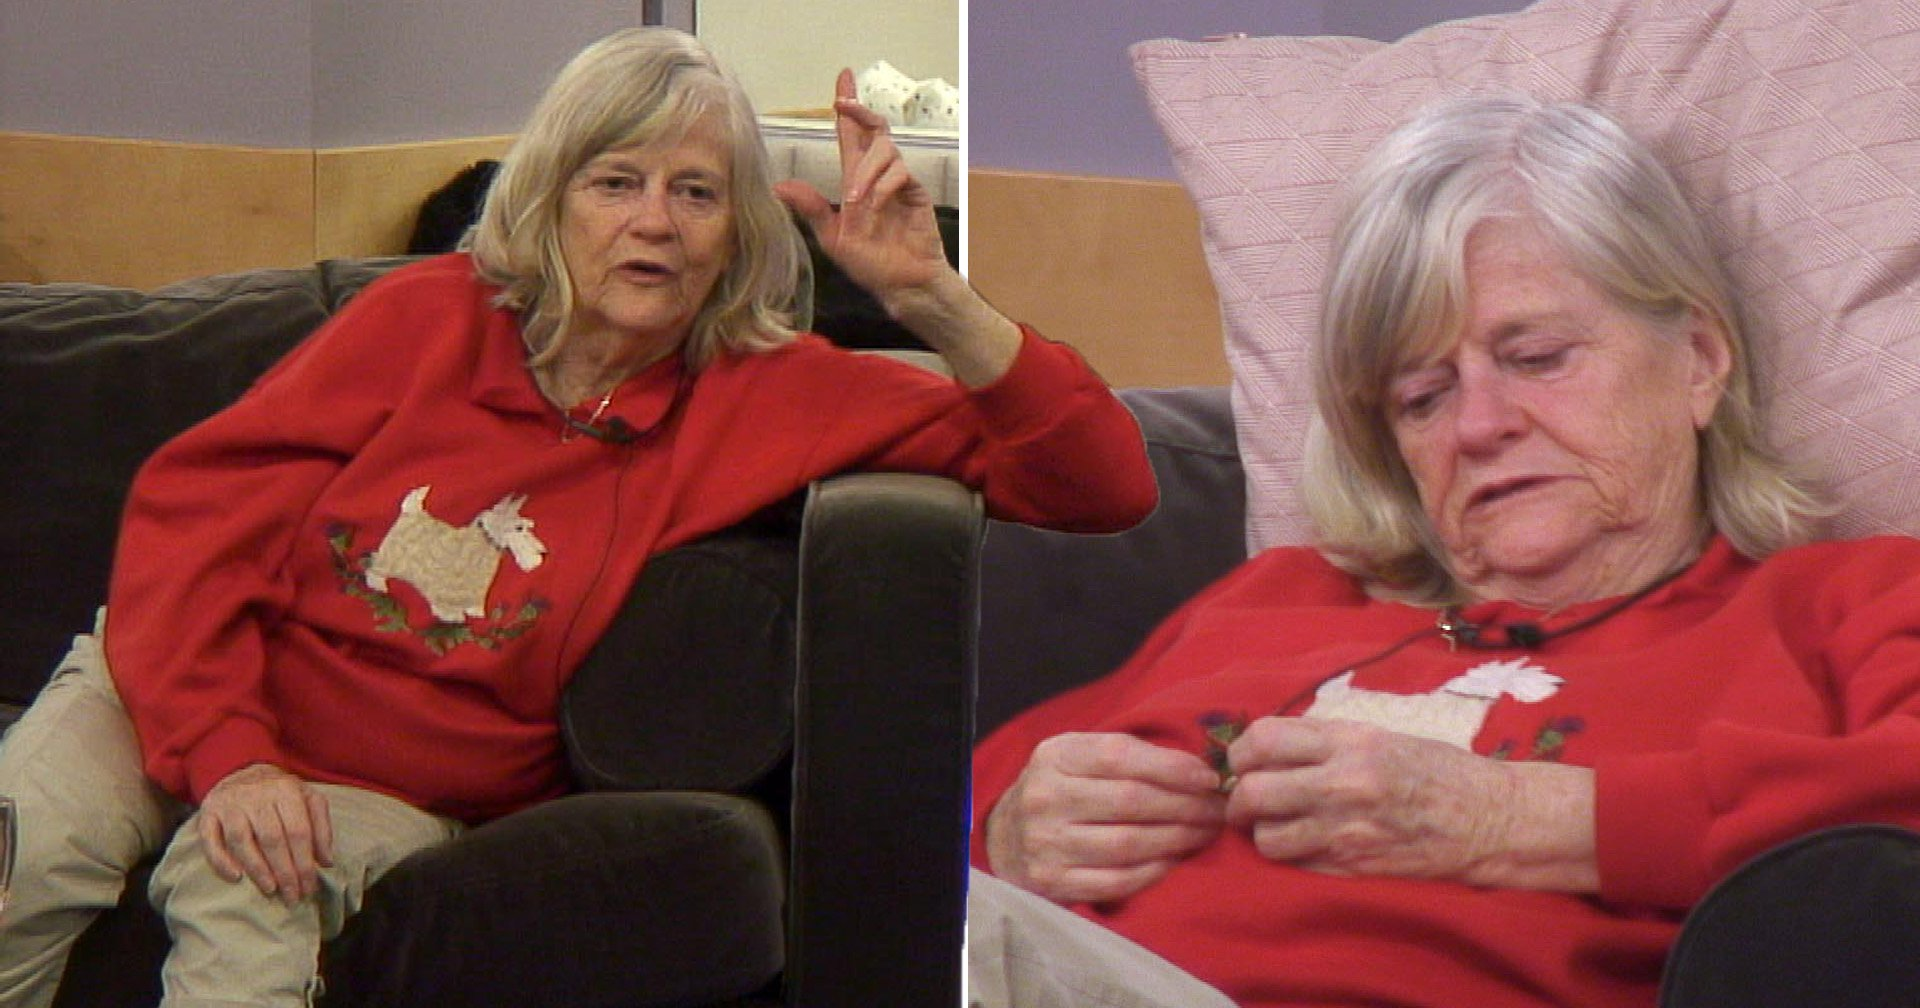 CBB's Ann Widdecombe says she prefers the 'solitary life' as she admits 'Mr. Right never came along'